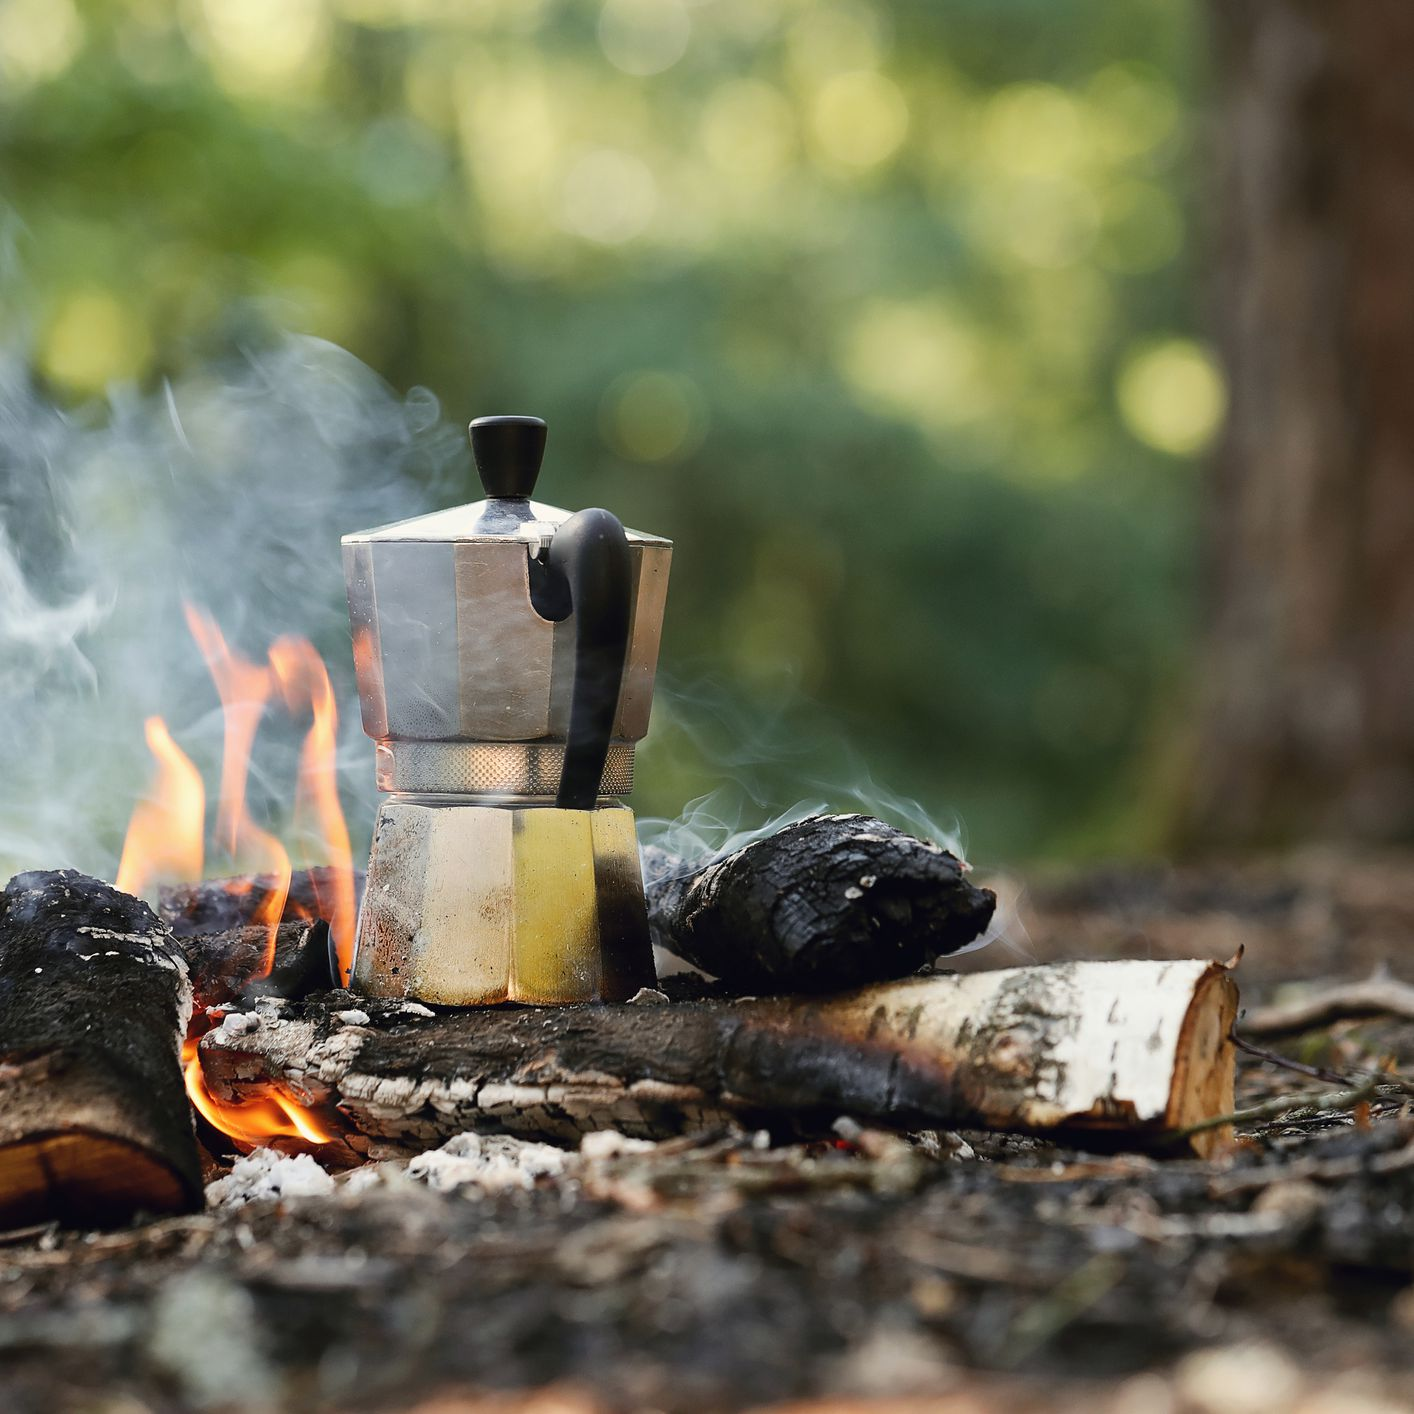 The 8 Best Camping Coffee Makers of 2019